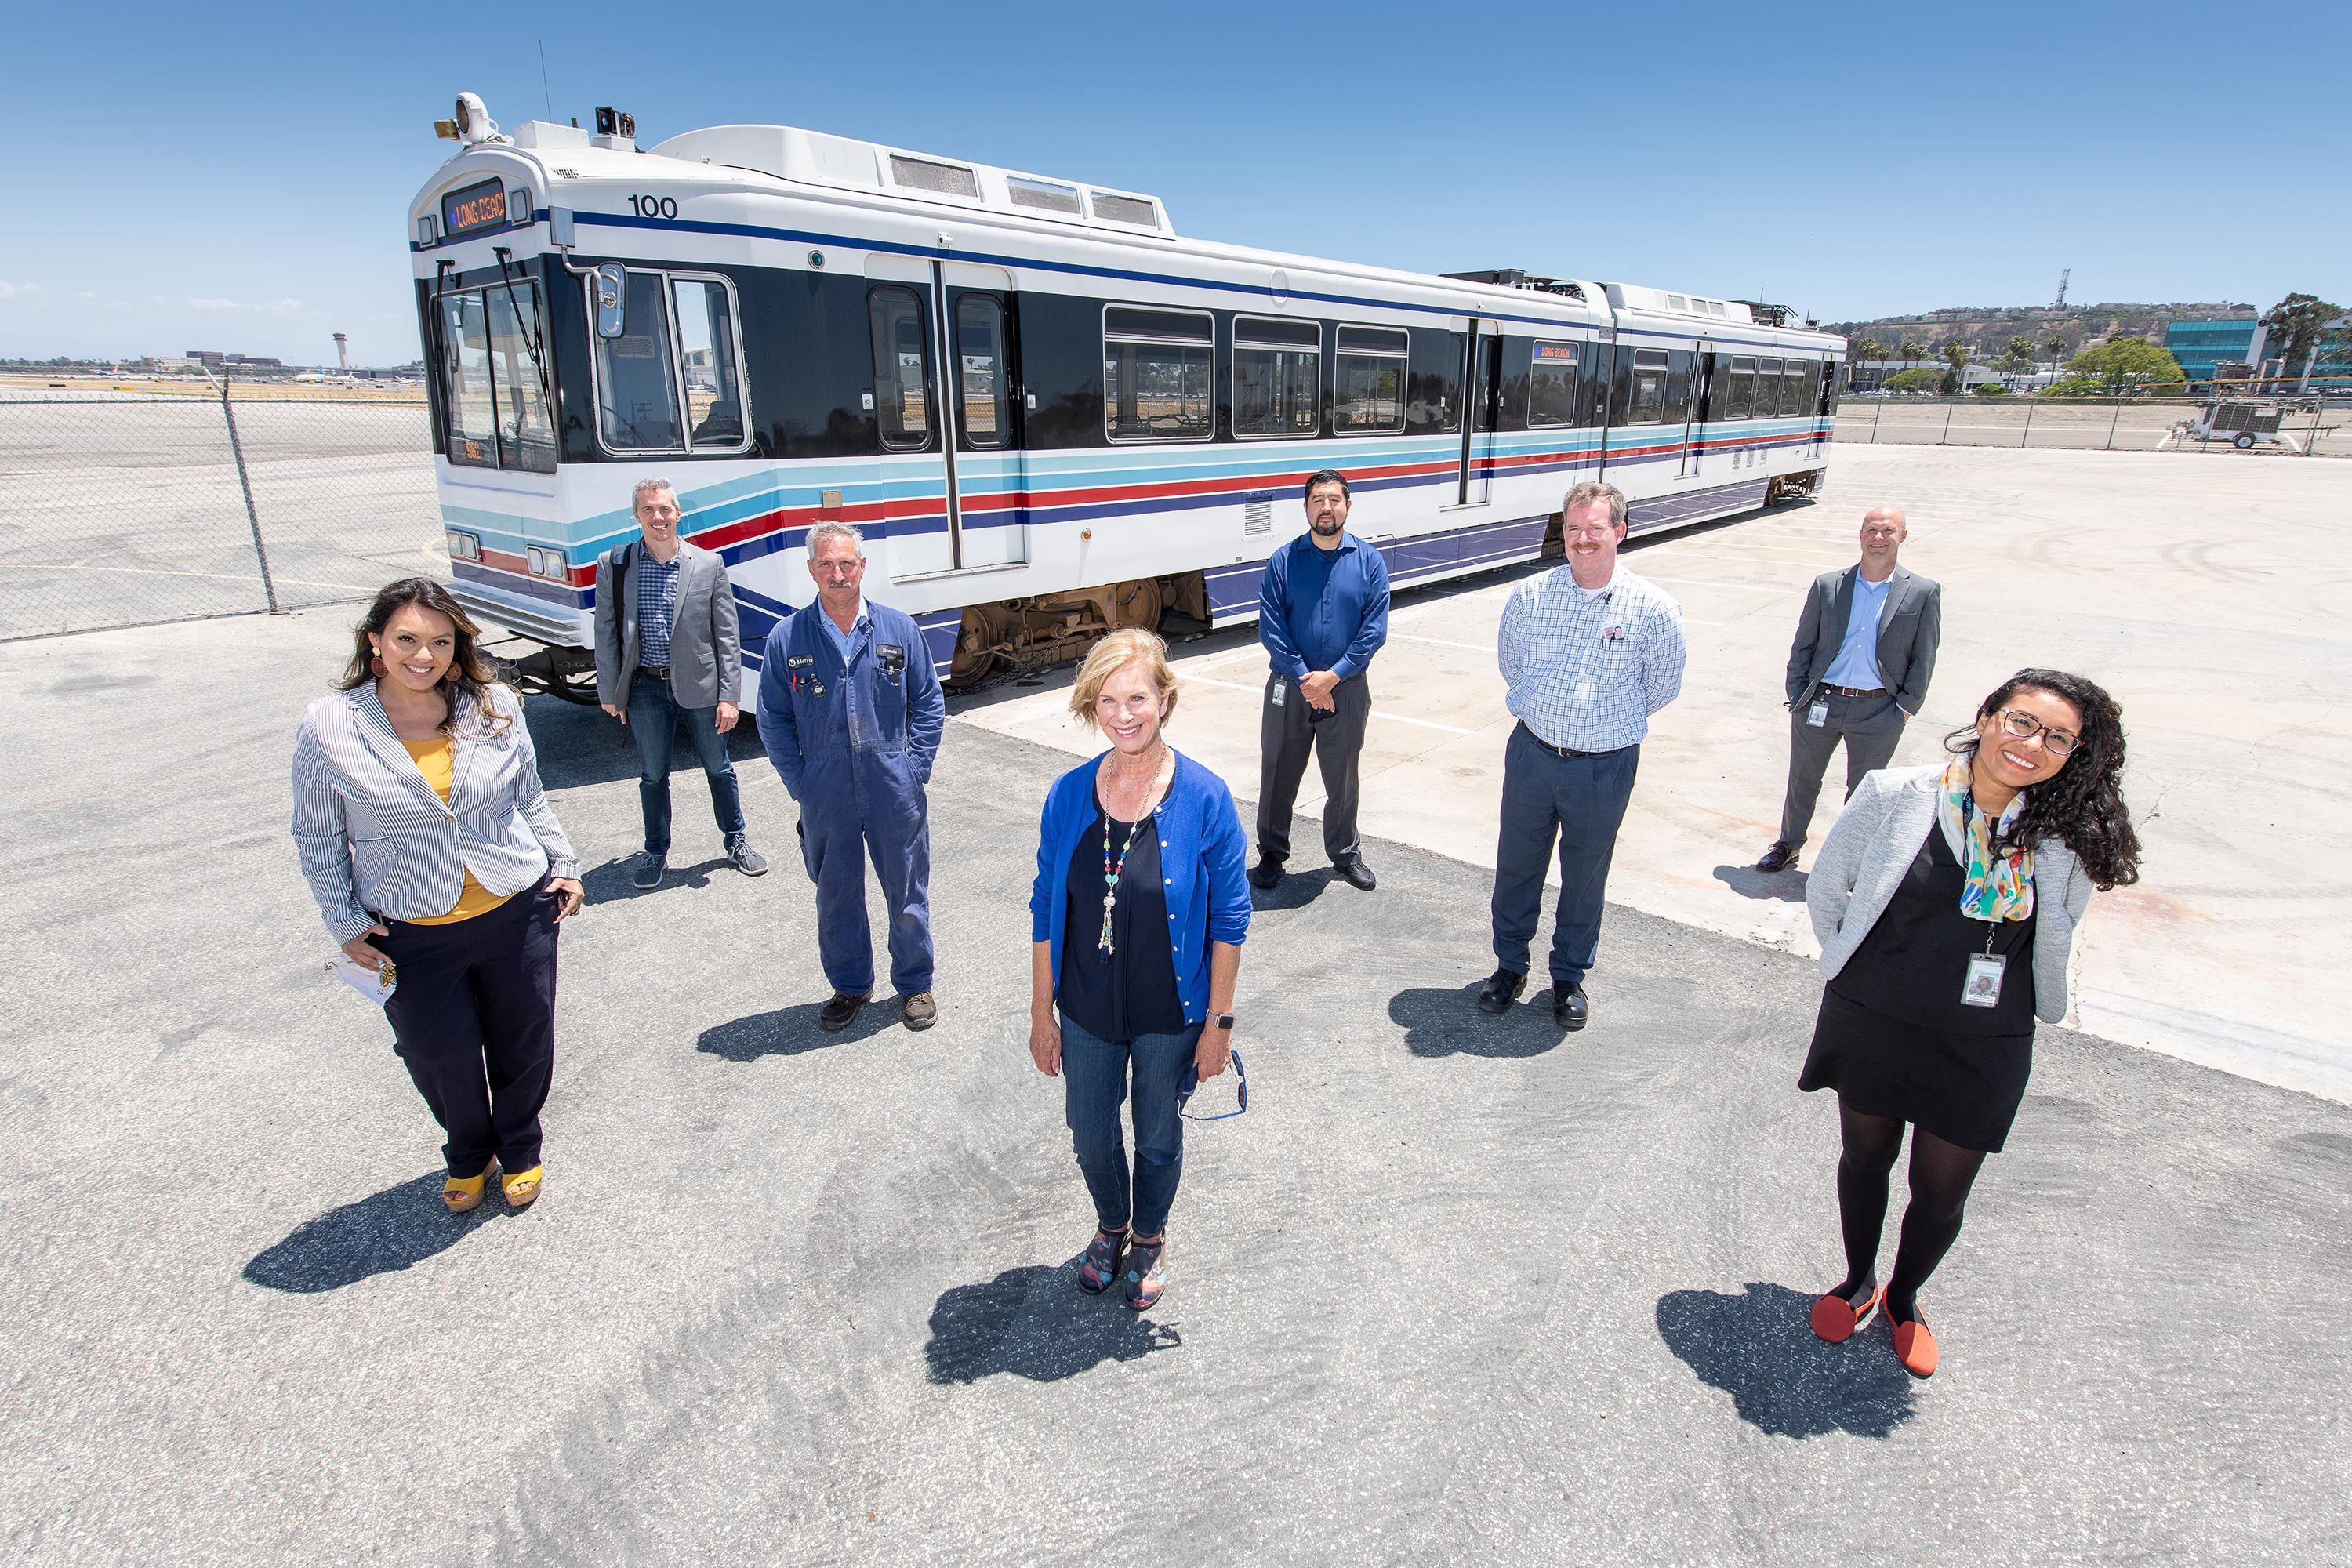 District 4 – Supervisor Janice Hahn<br>  <b>May 21, 2021 – Metro Car 100 Preservation </b><br> <i>Photo by Bryan Chan / Board of Supervisors</i>